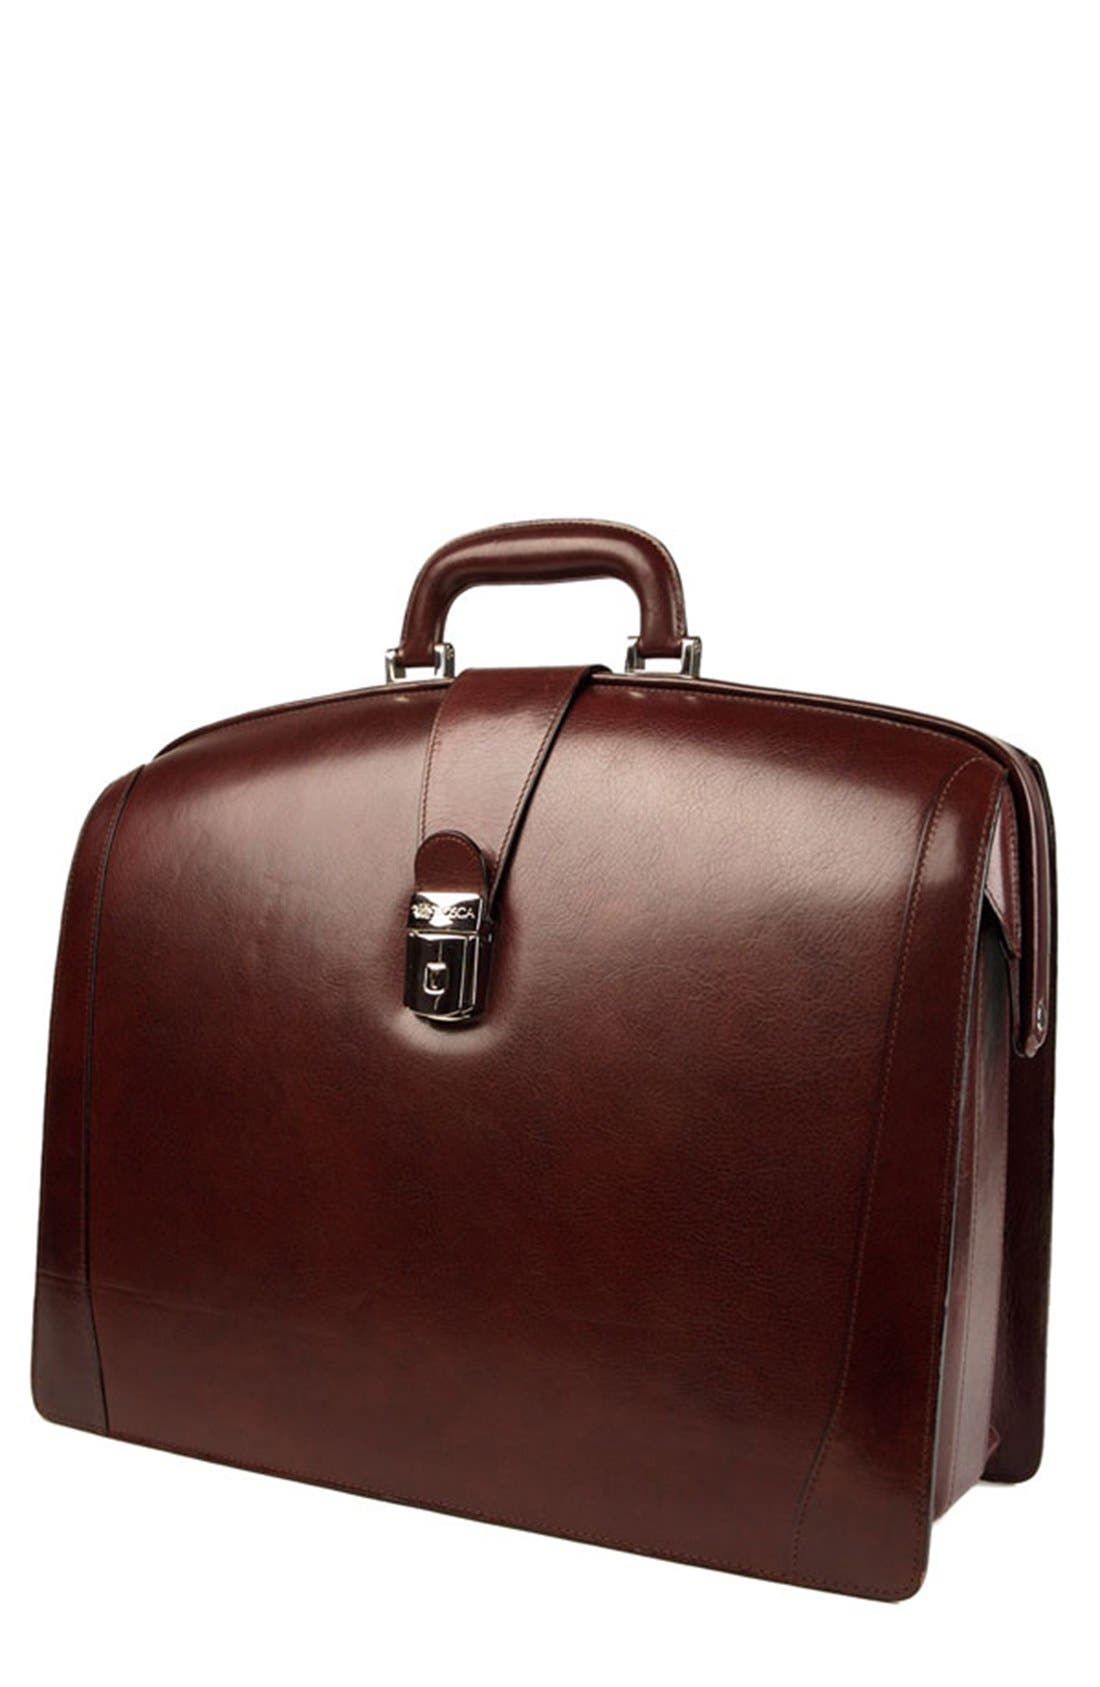 Main Image - Bosca Triple Compartment Leather Briefcase